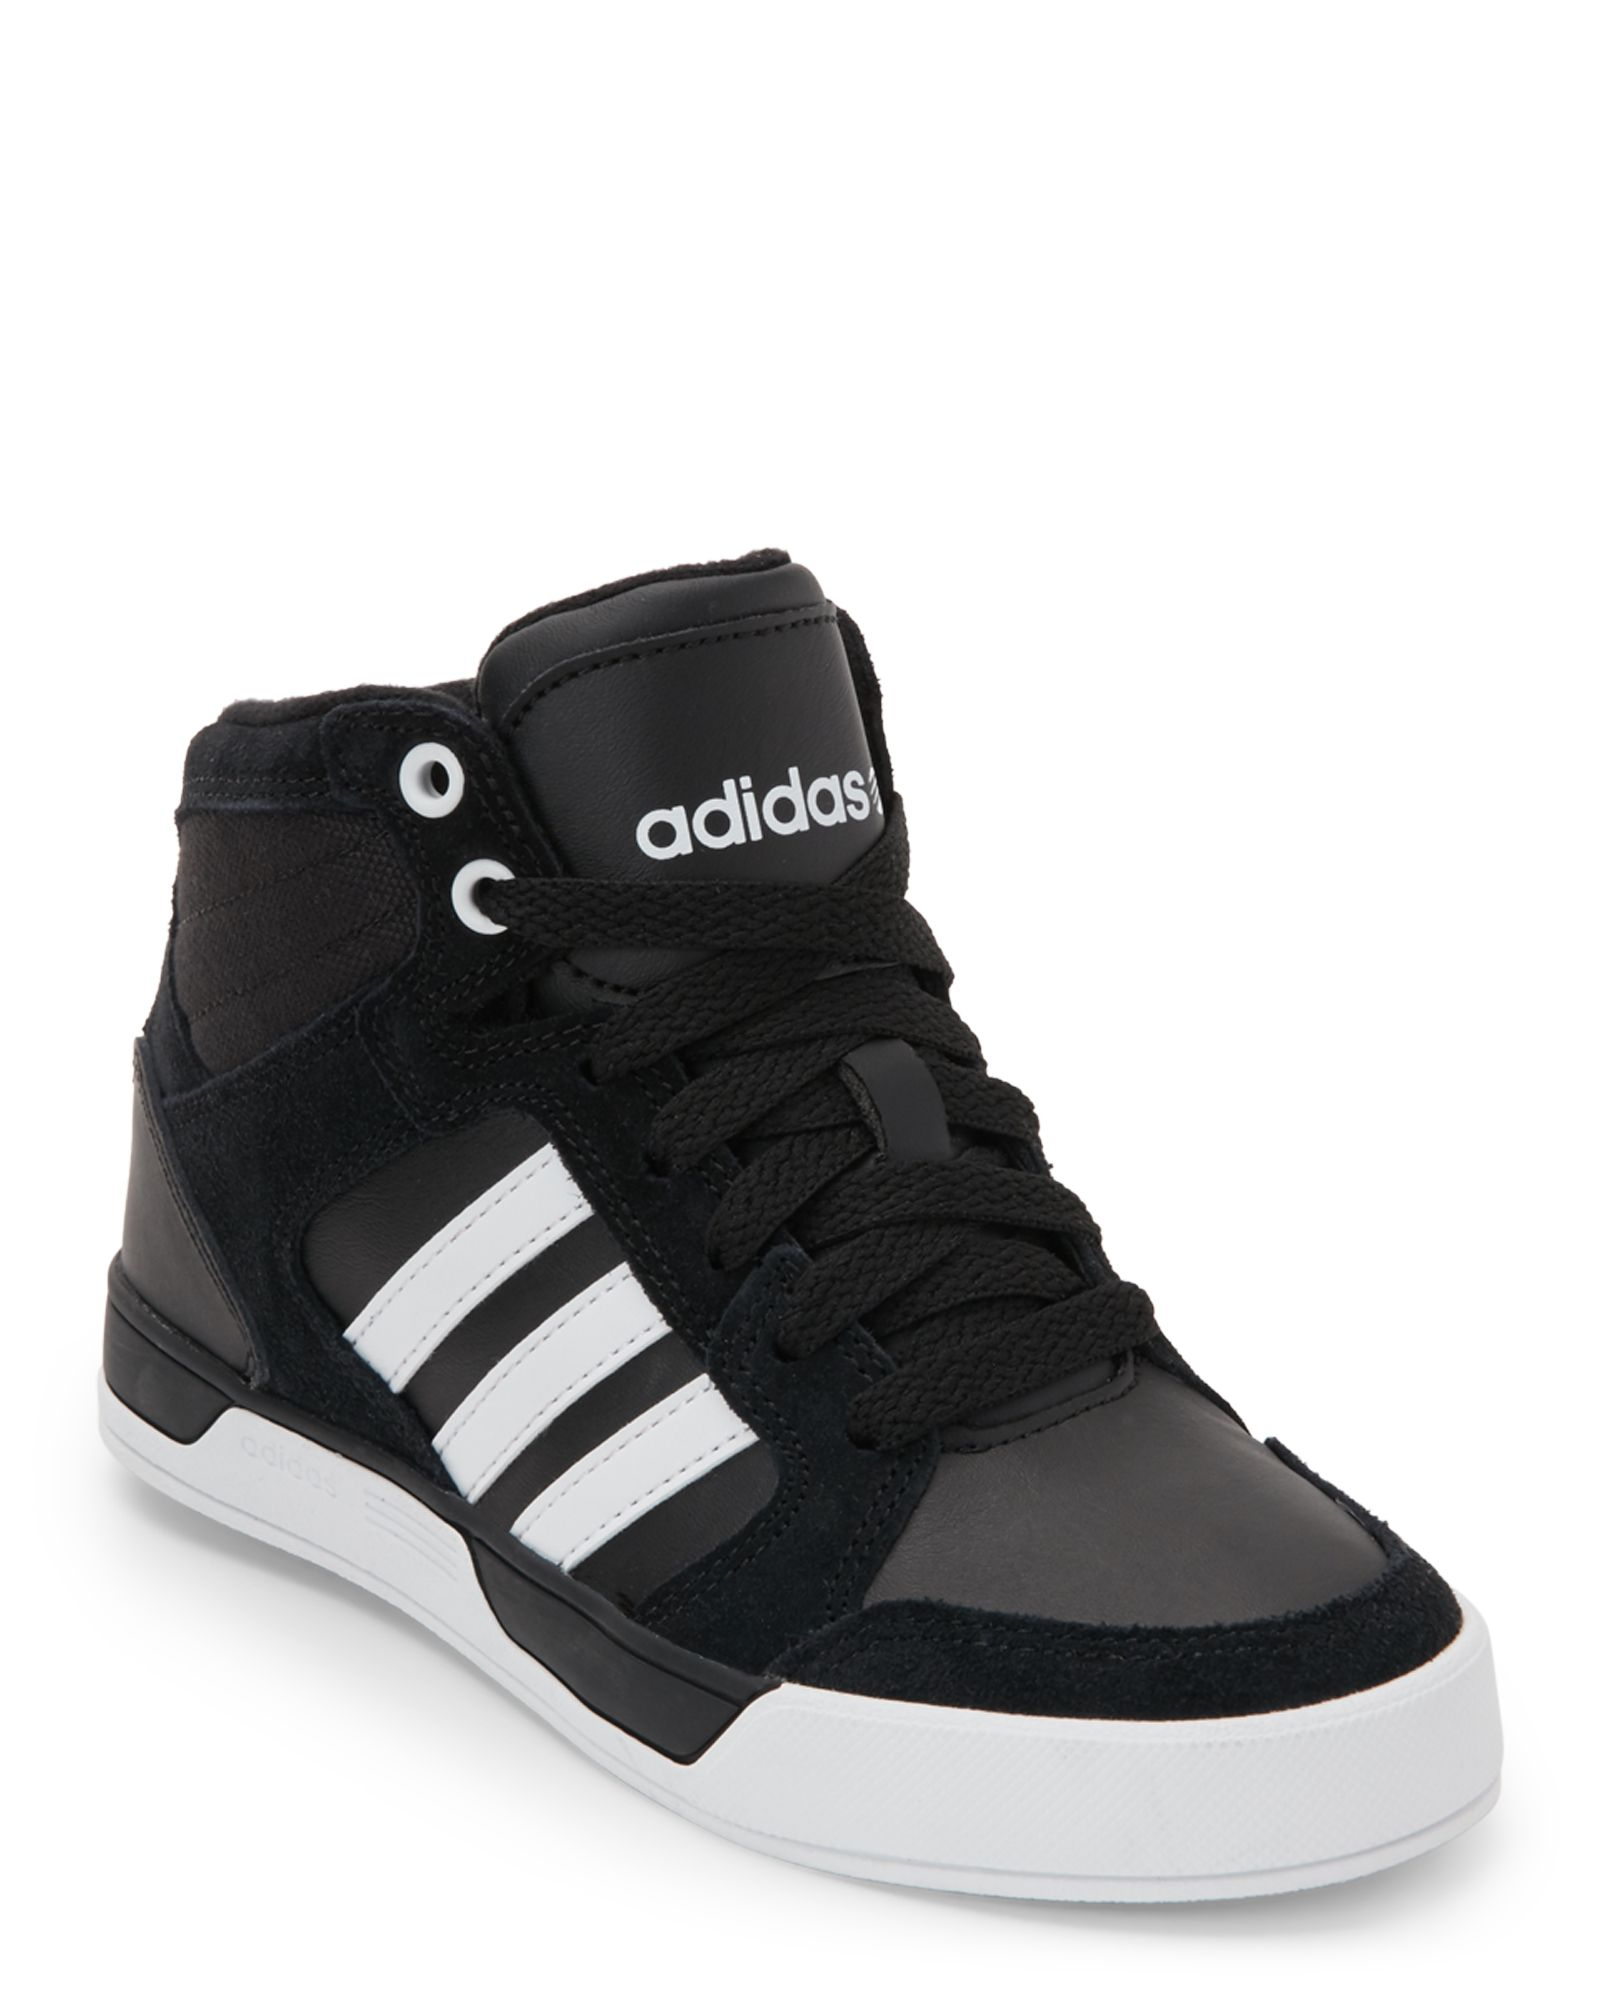 f017cd667d06 Adidas (Kids Boys) Black   White Neo Raleigh K High Top Sneakers ...